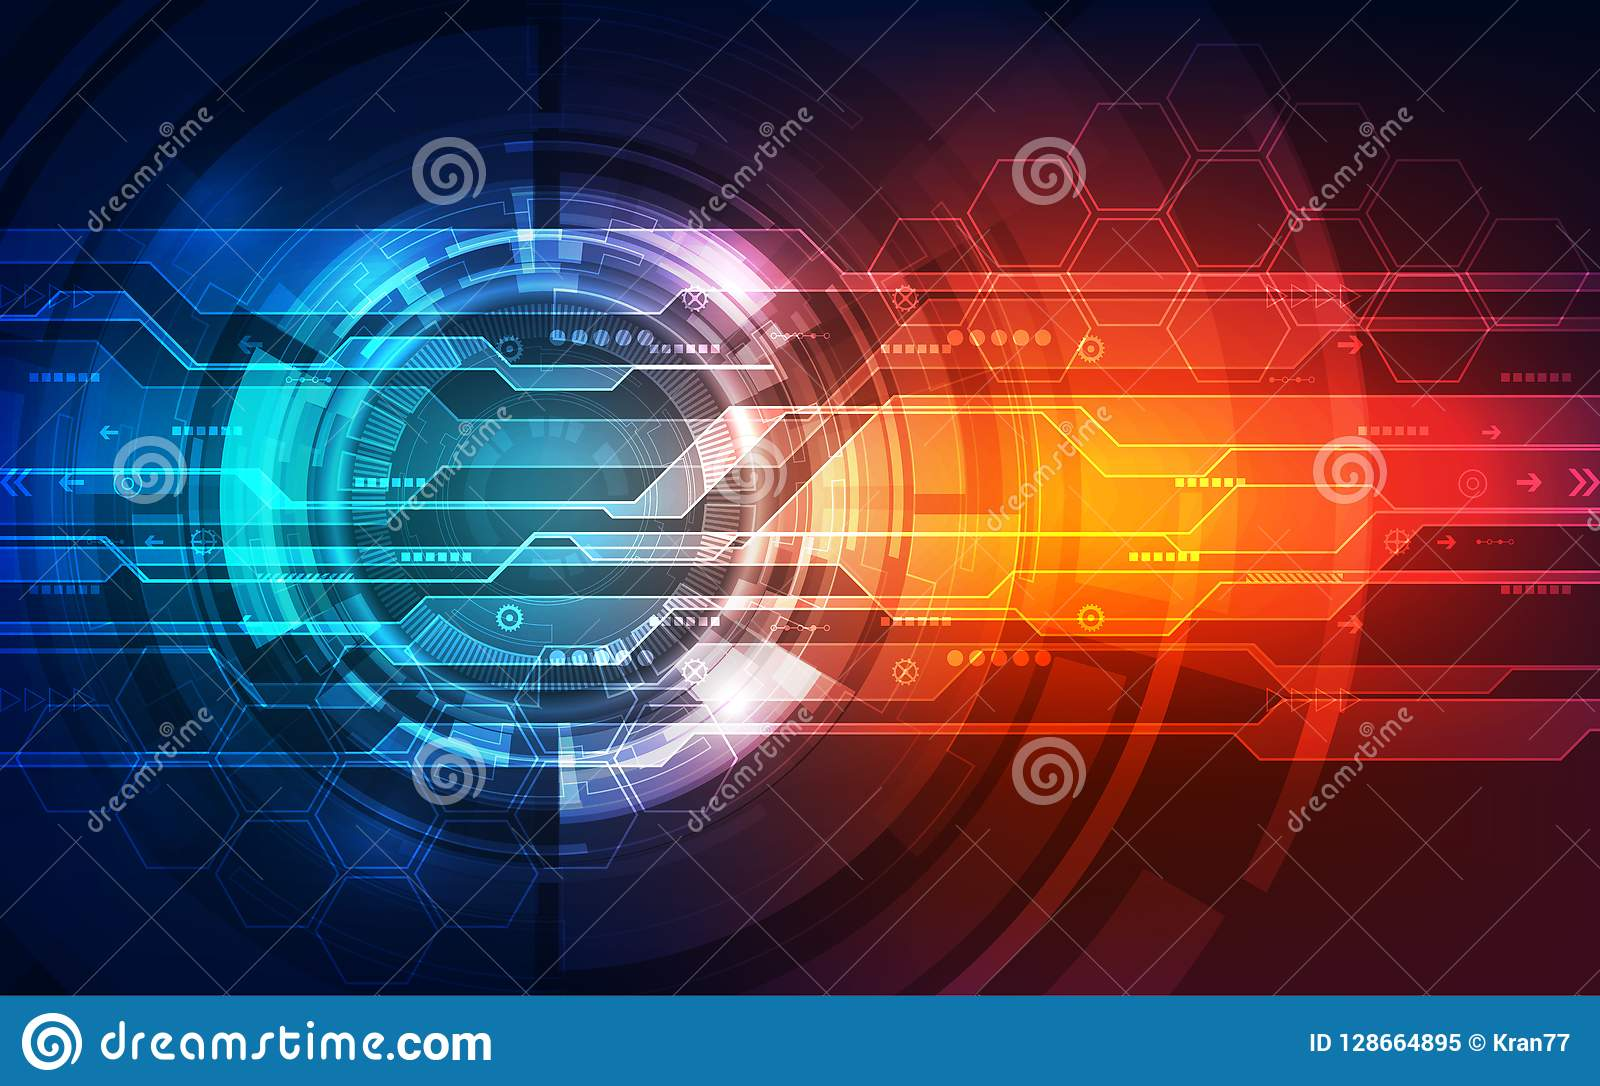 Vector future digital speed technology concept, abstract background illustration